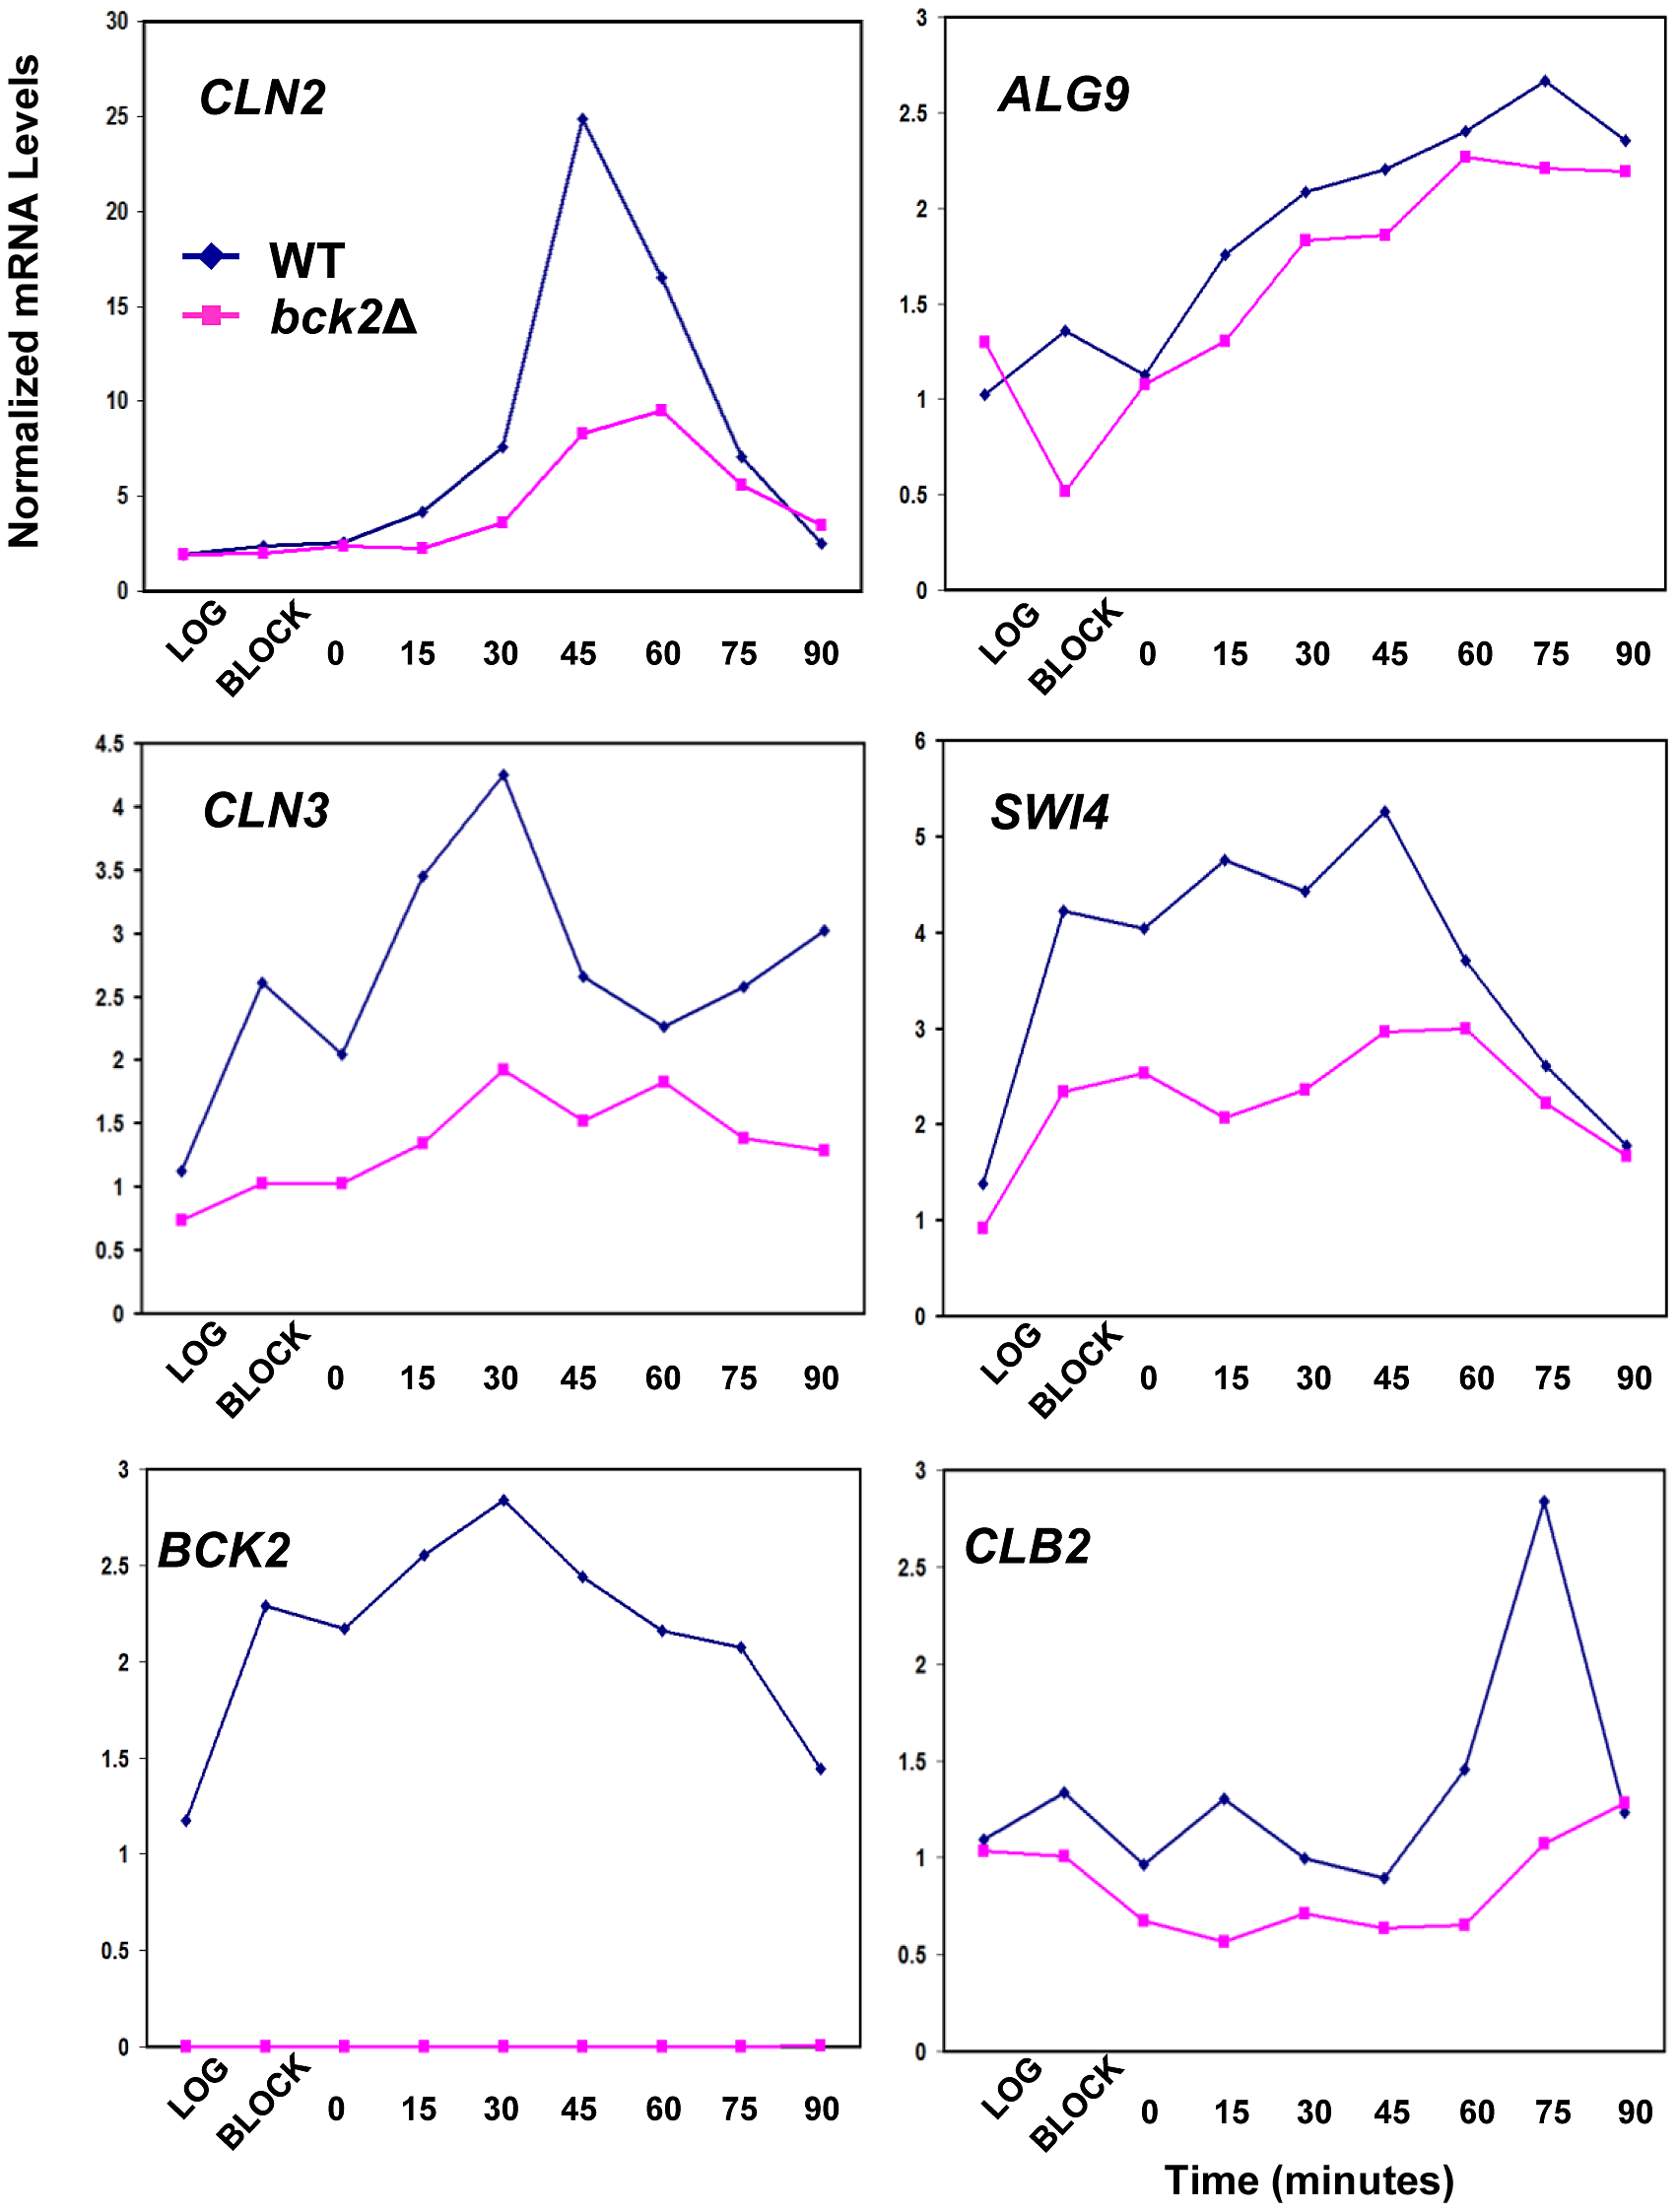 Effect of <i>BCK2</i> deletion on <i>CLN2</i>, <i>ALG9</i>, <i>CLN3</i>, <i>SWI4</i>, <i>BCK2</i>, and <i>CLB2</i> mRNA accumulation during the cell cycle.